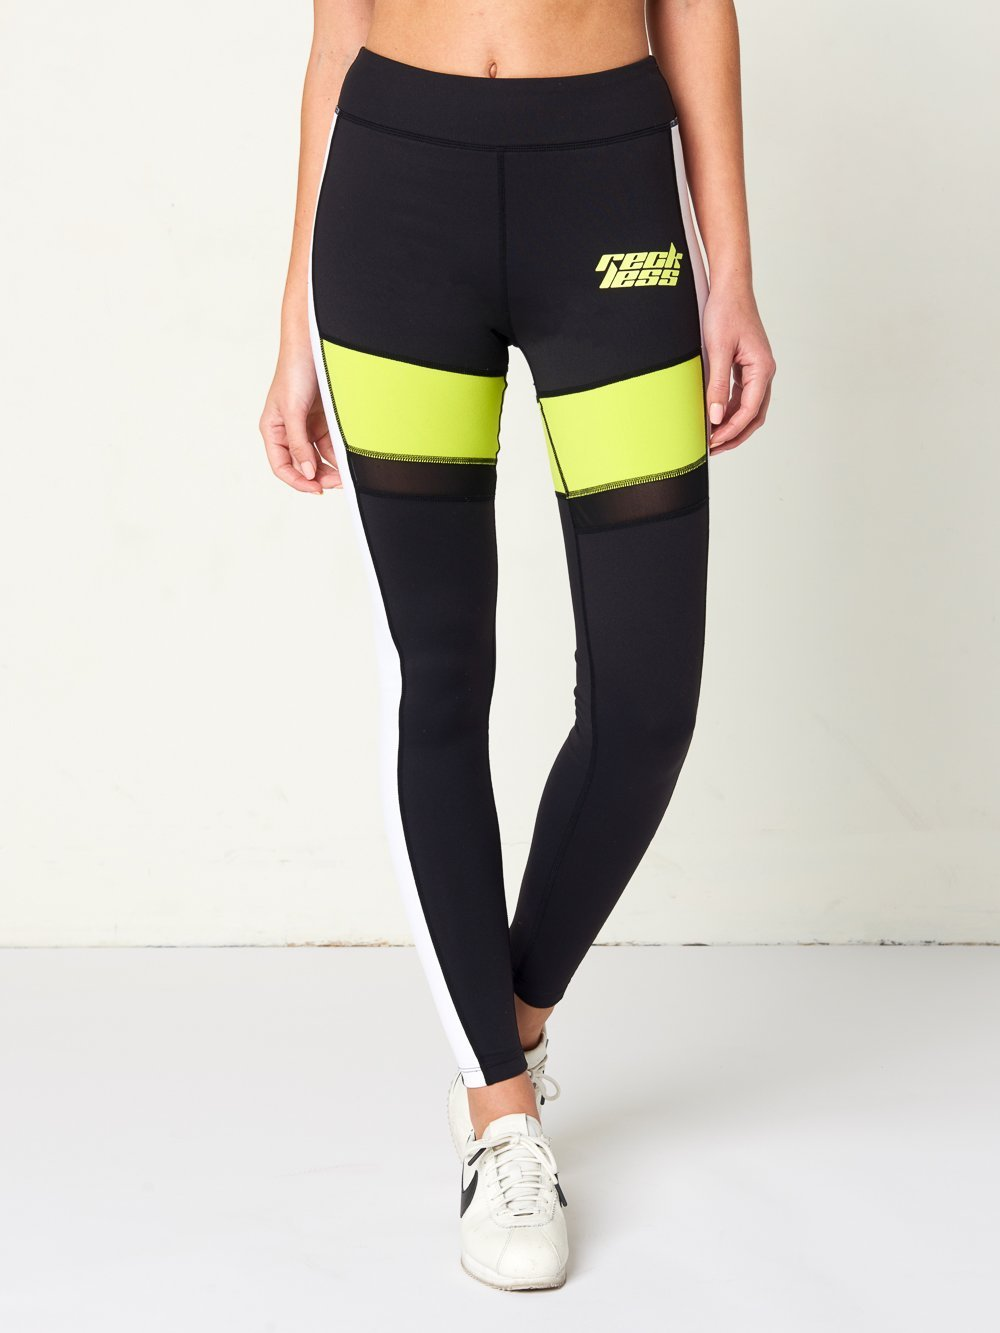 Reckless Girls Womens - Activewear - Leggings Luna Leggings- Black